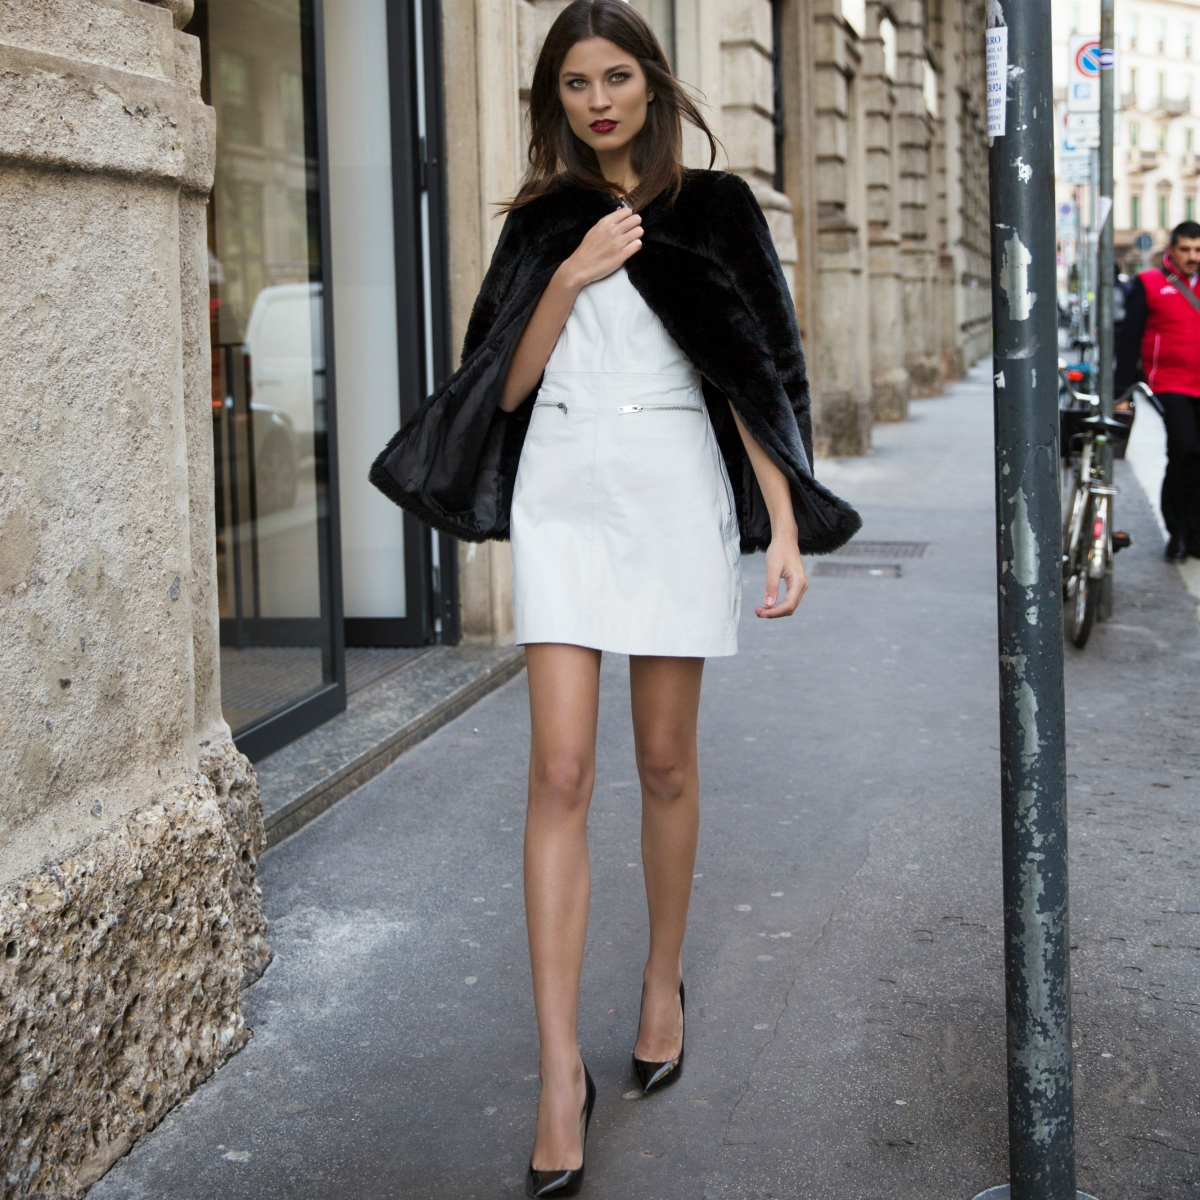 How to Get Supermodel Legs